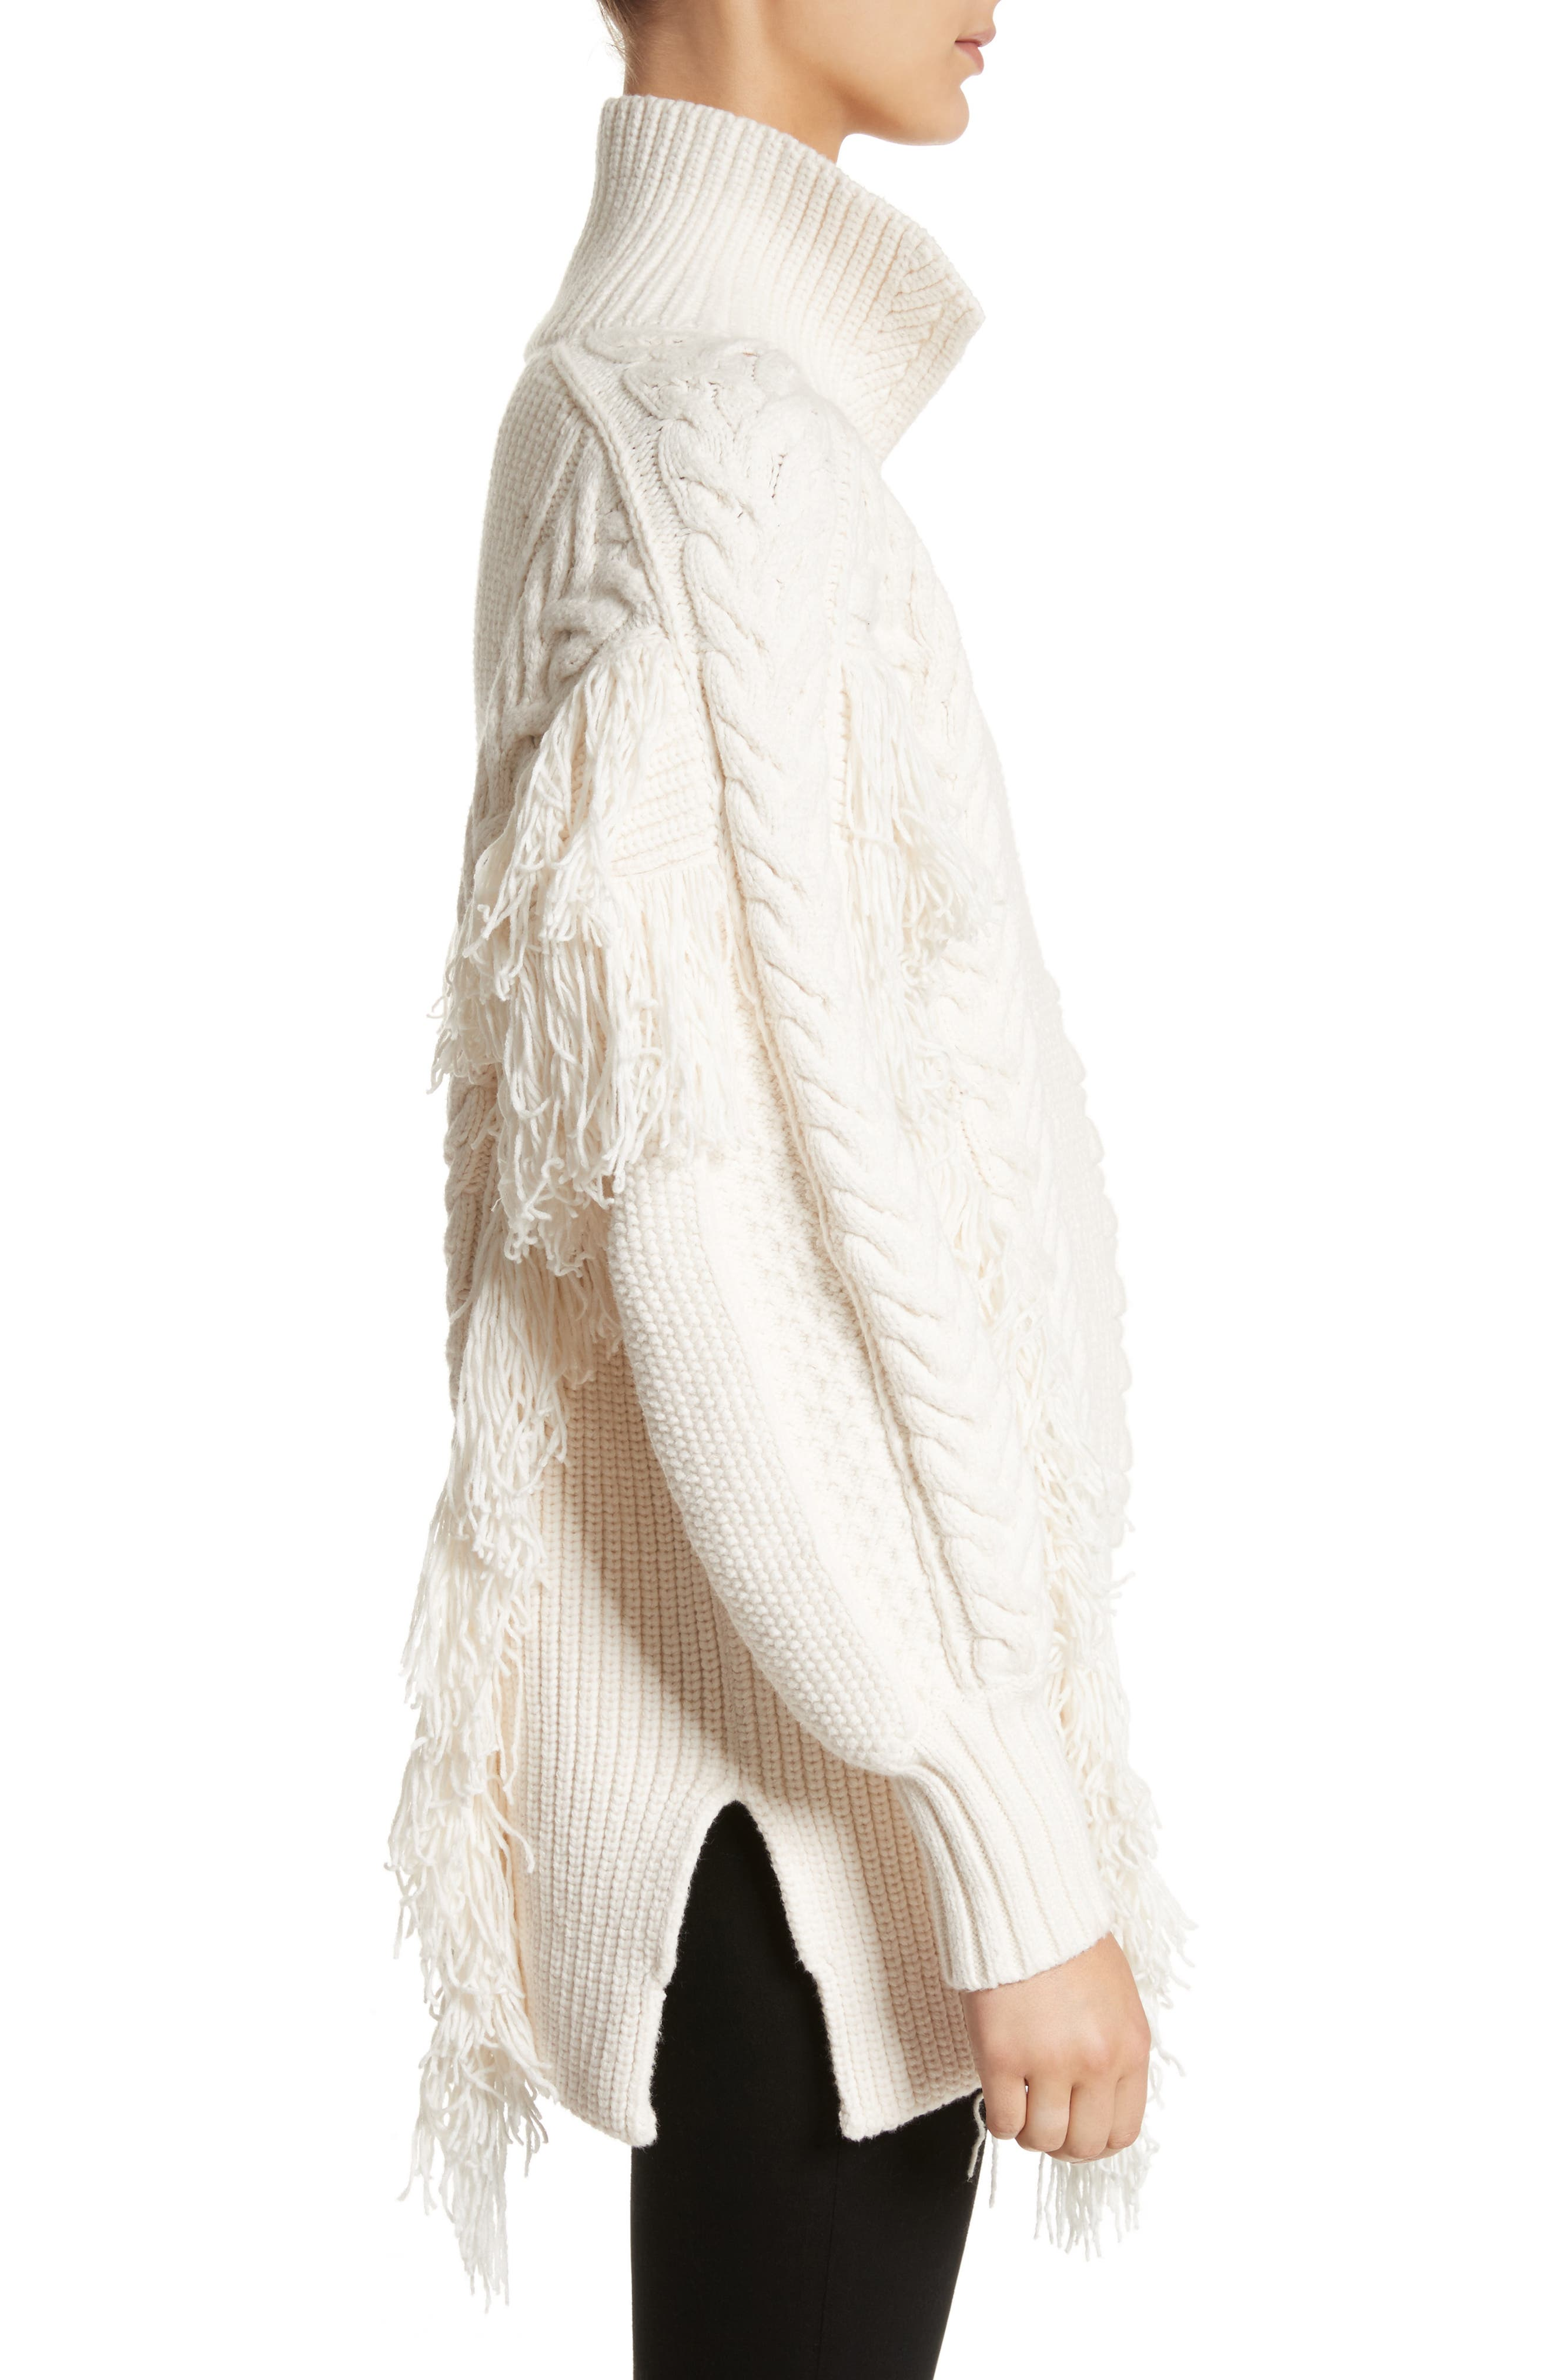 Borbore Fringed Cable Knit Sweater,                             Alternate thumbnail 3, color,                             103